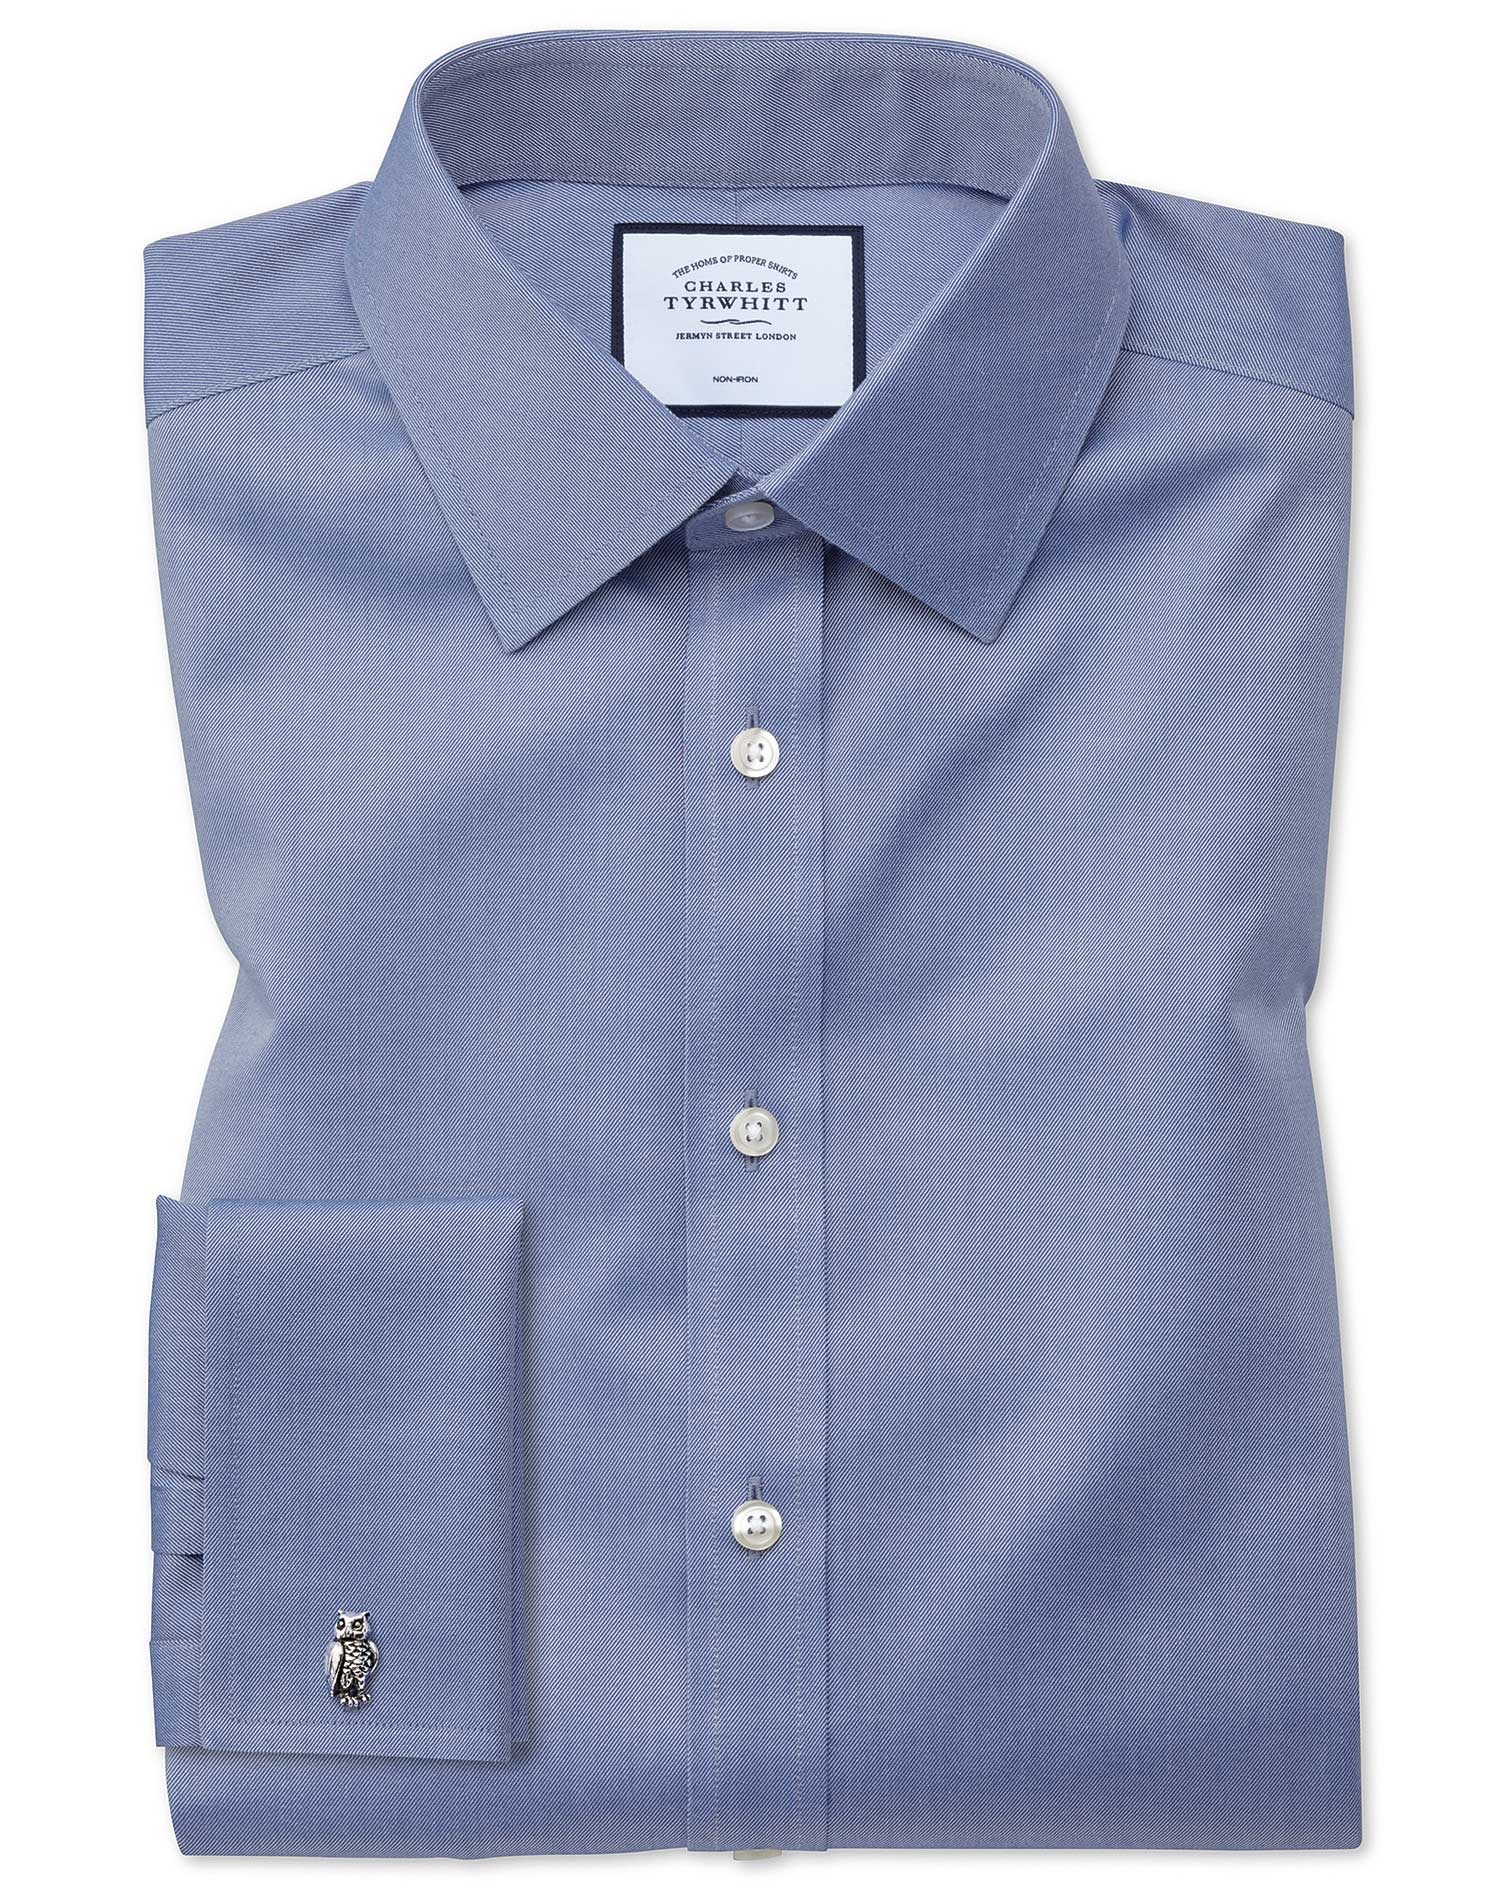 Slim Fit Non-Iron Twill Mid Blue Cotton Formal Shirt Single Cuff Size 17/33 by Charles Tyrwhitt